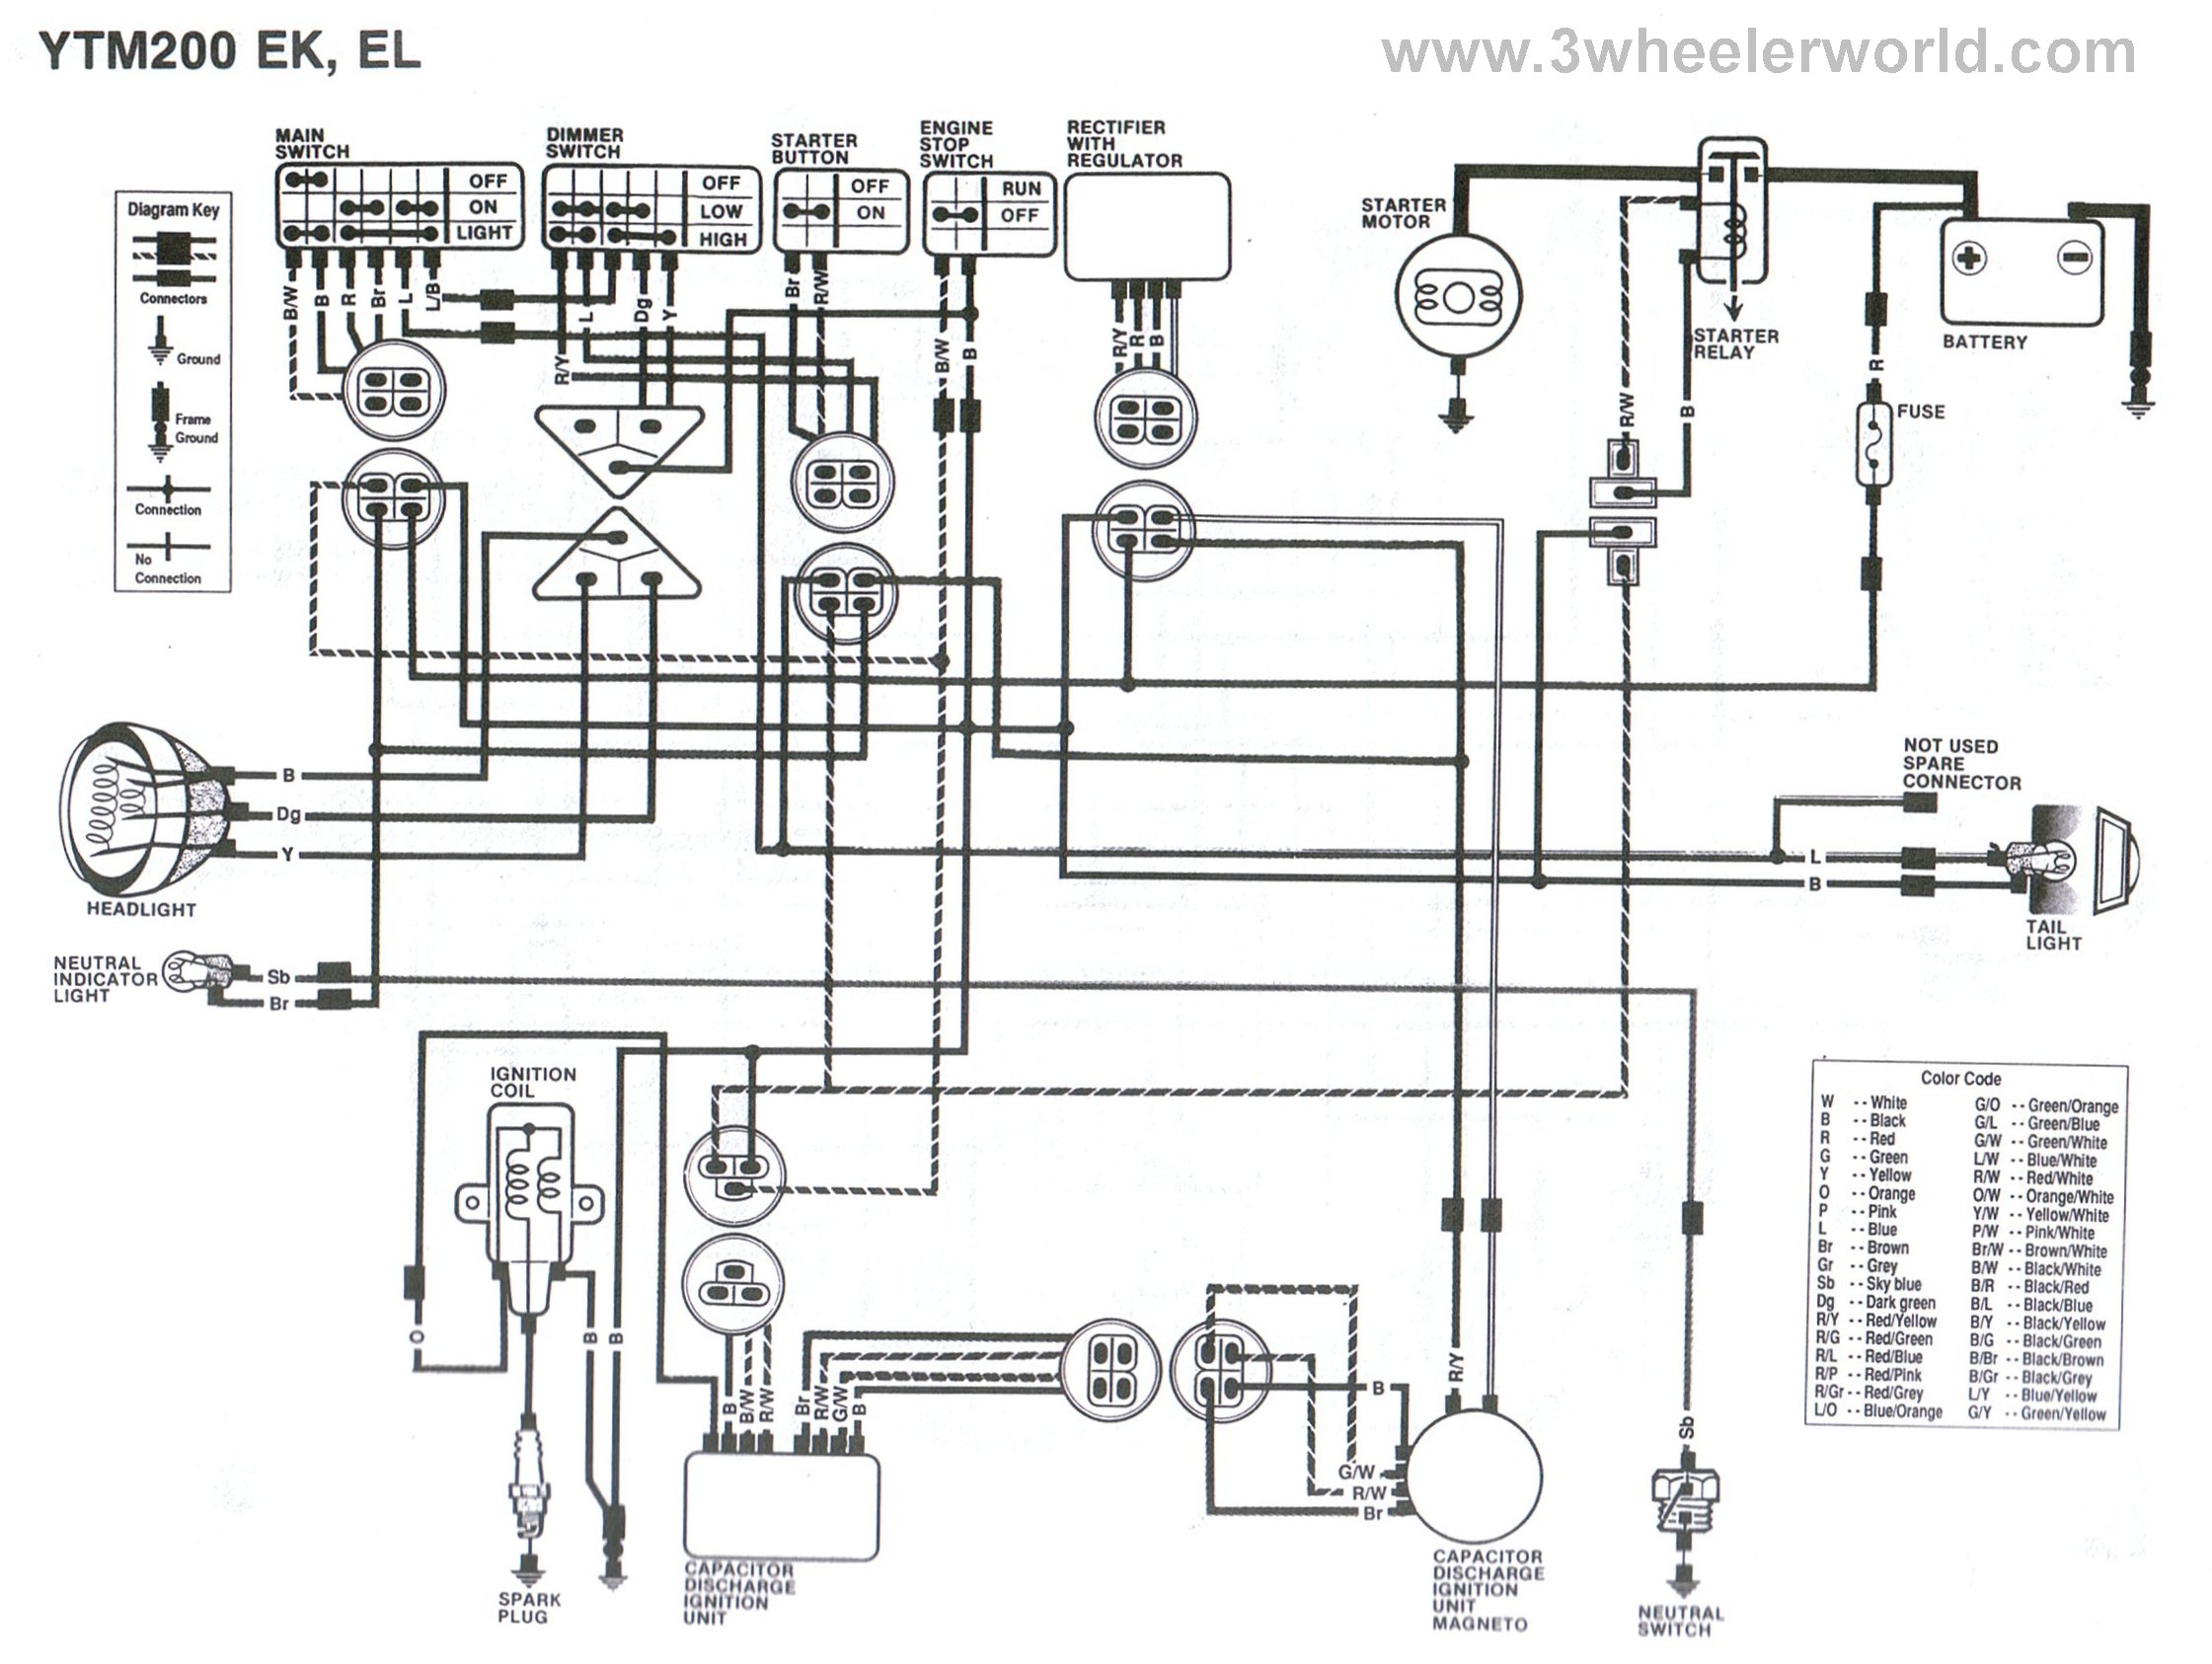 Snowmobile Wiring Diagram. Wiring. Wiring Diagrams Instructions